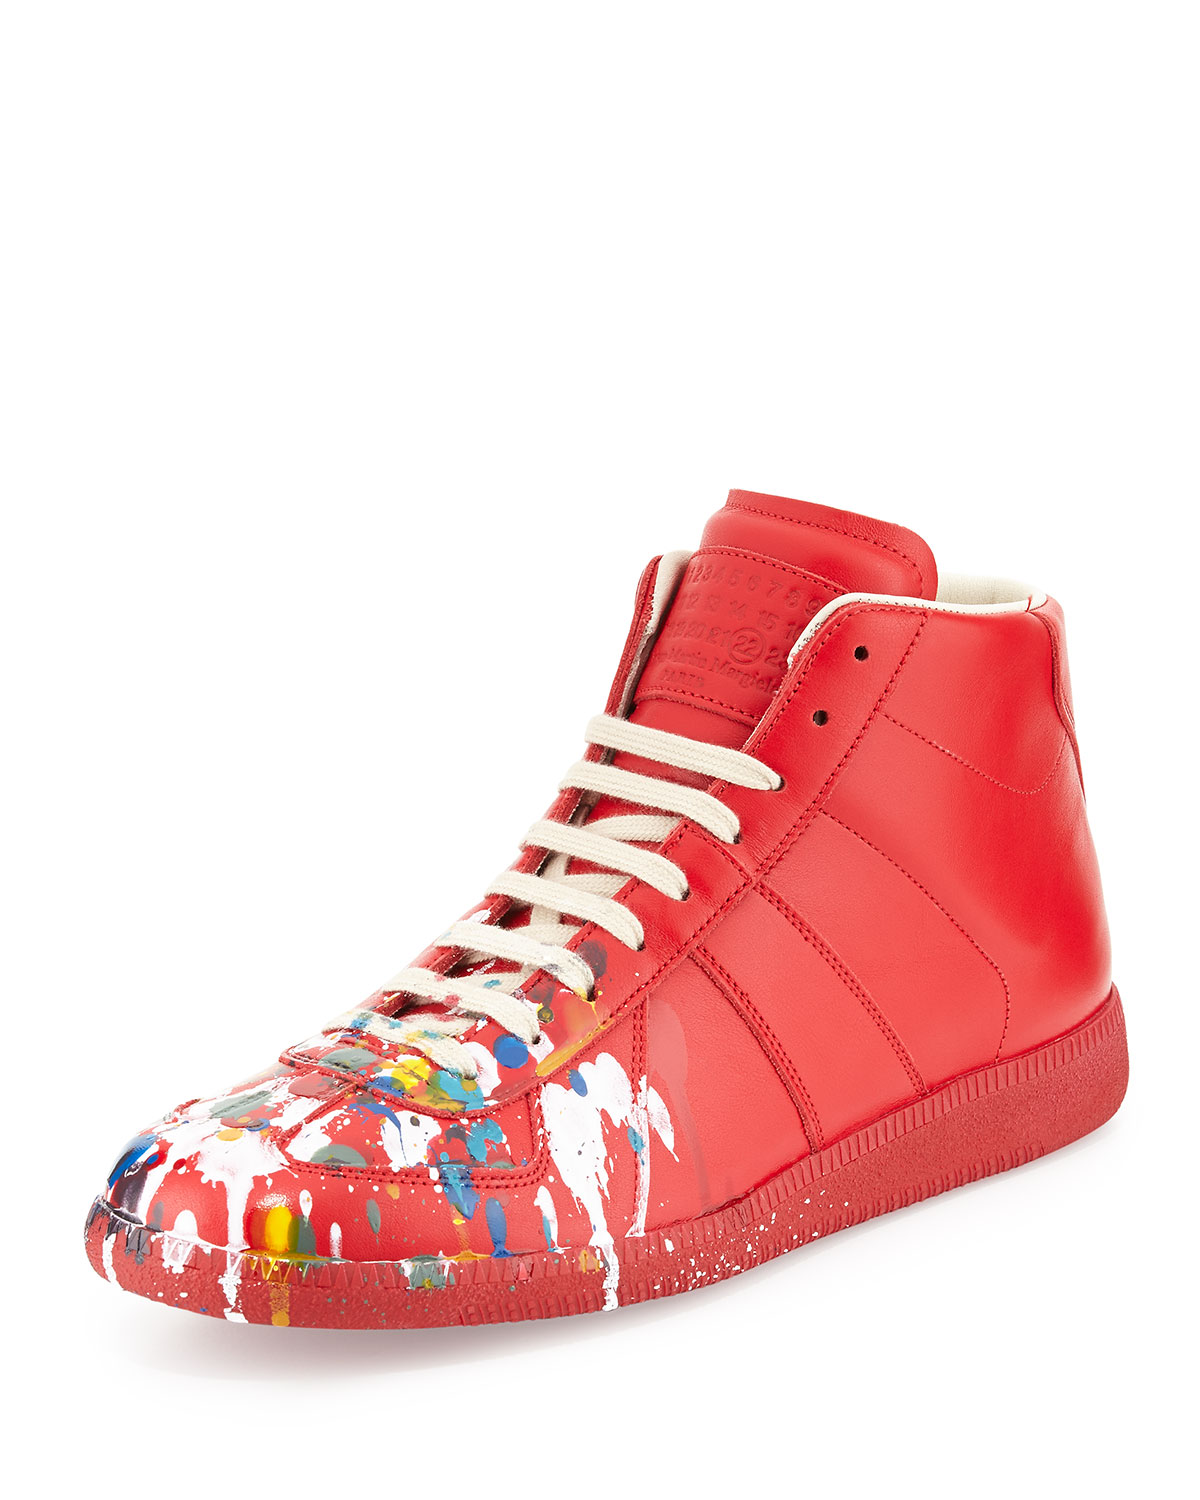 Maison Margiela Paint-Splatter Replica High-Top Sneaker 4445ef18b